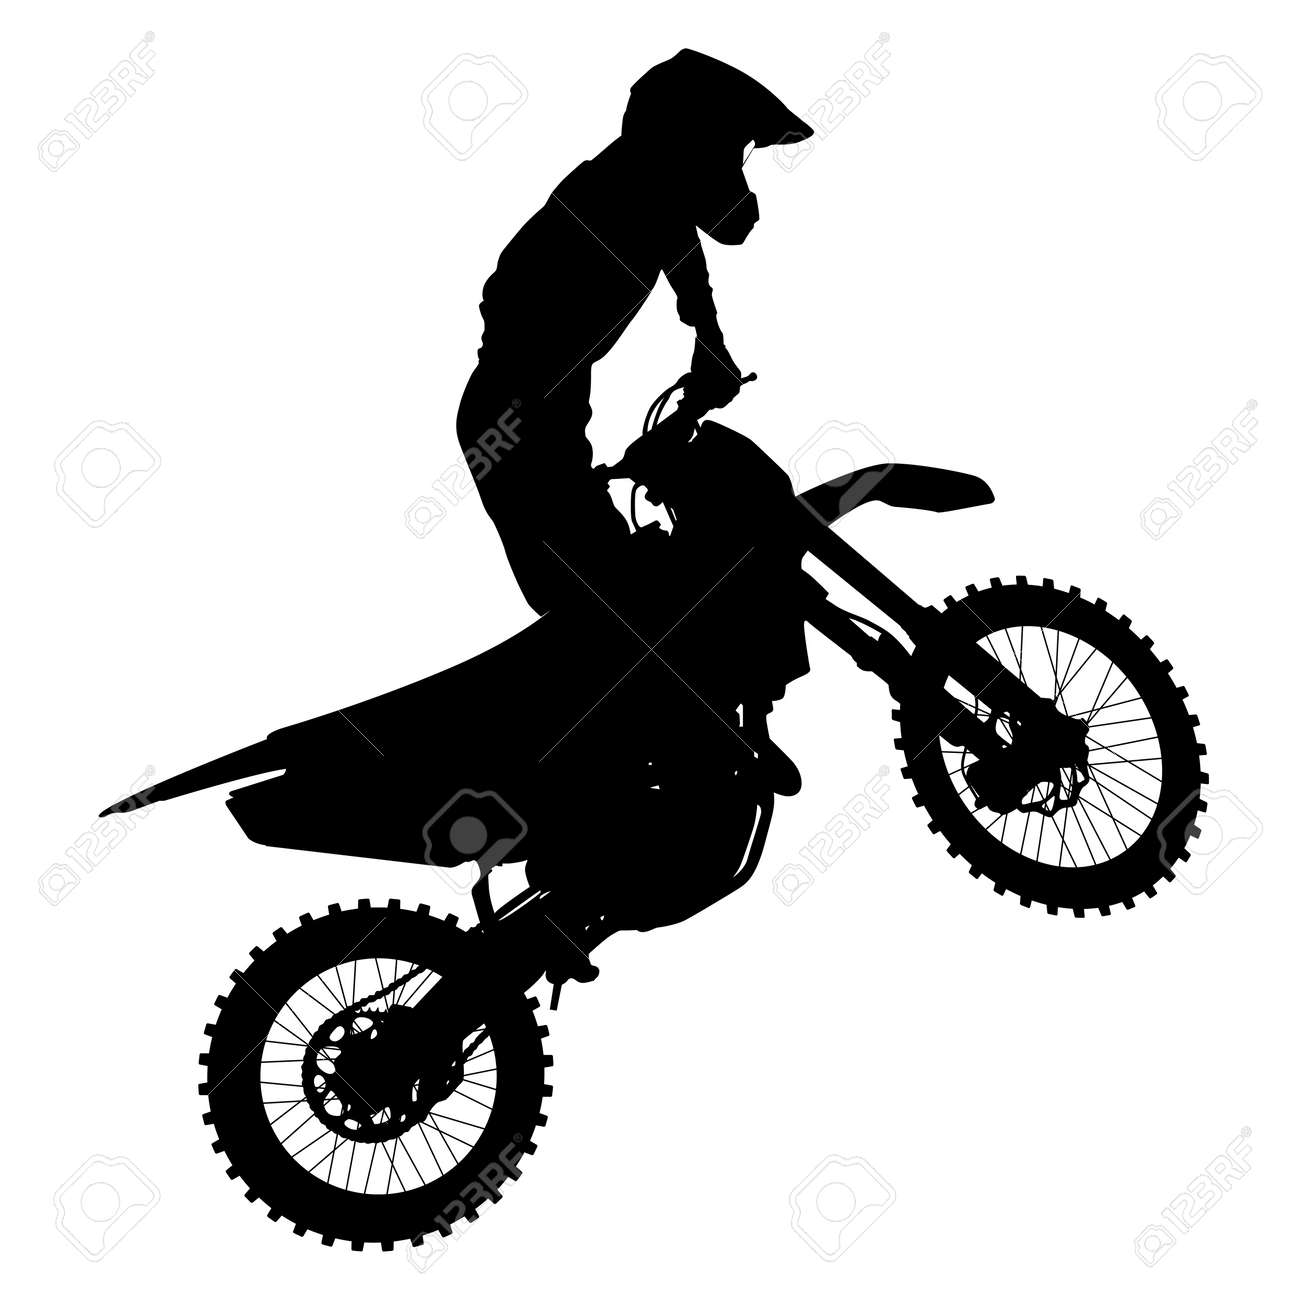 Black silhouettes Motocross rider on a motorcycle. Vector illustrations. - 31715601